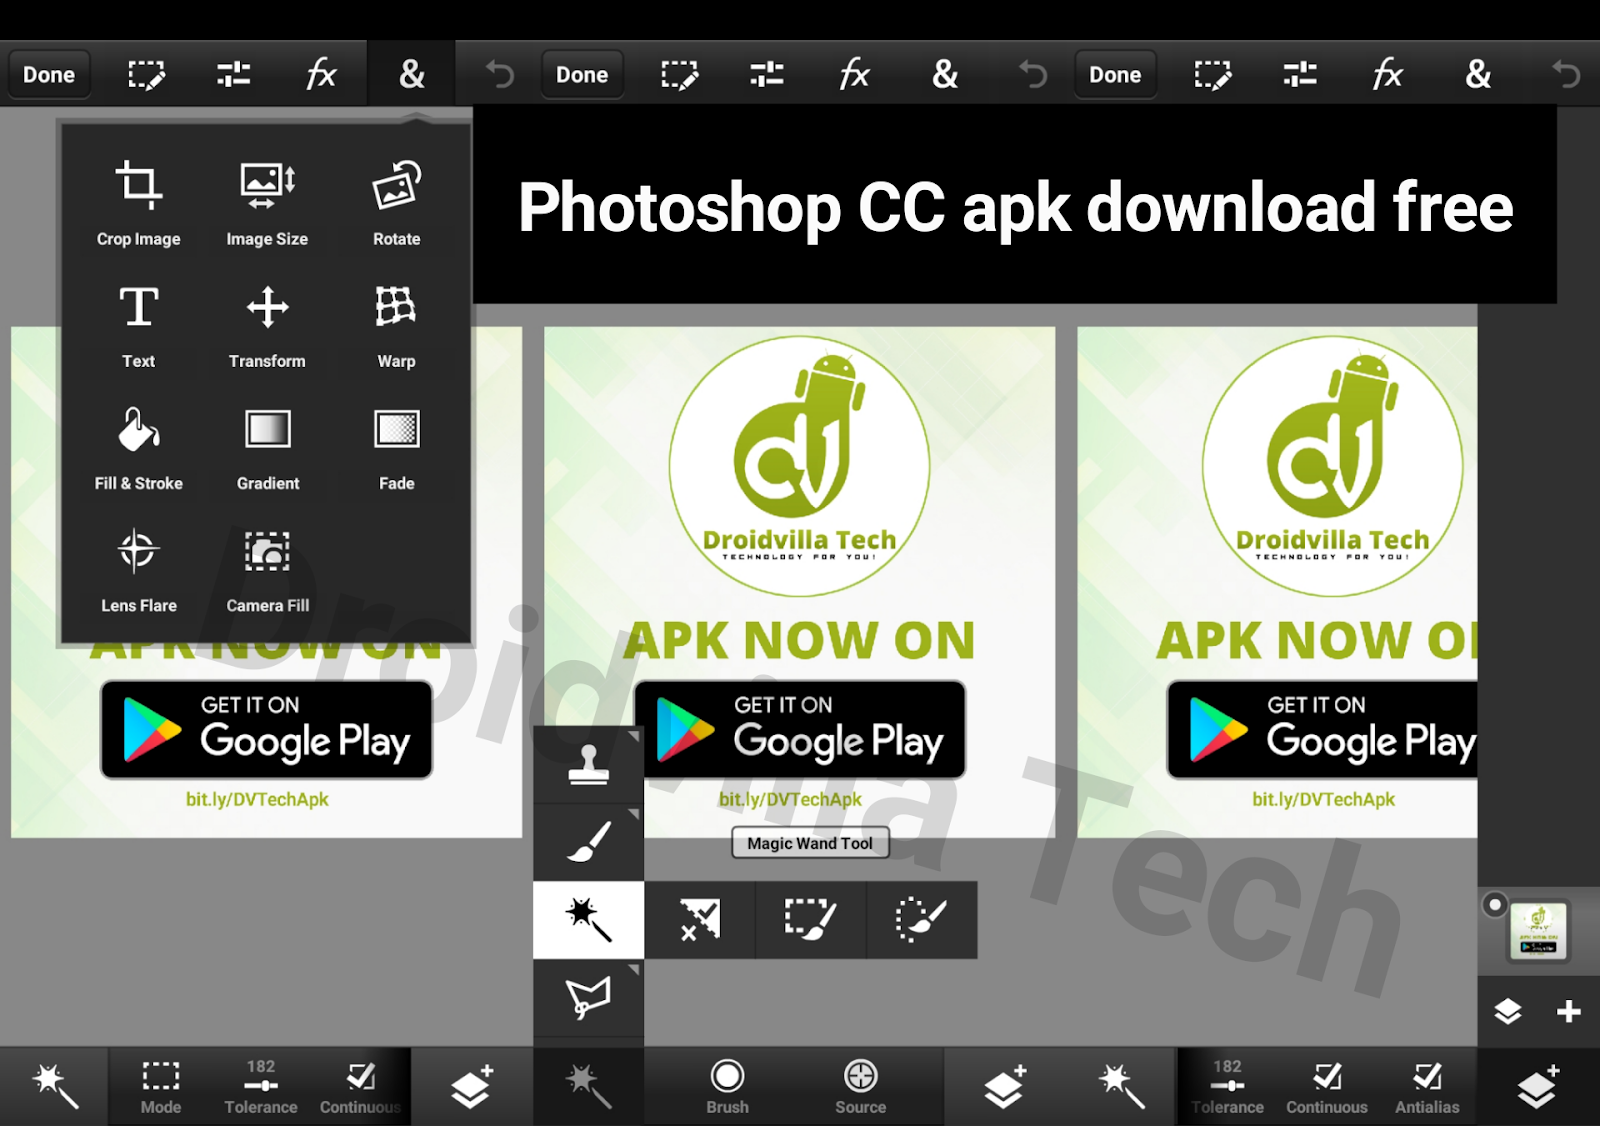 Photoshop touch cc apk download